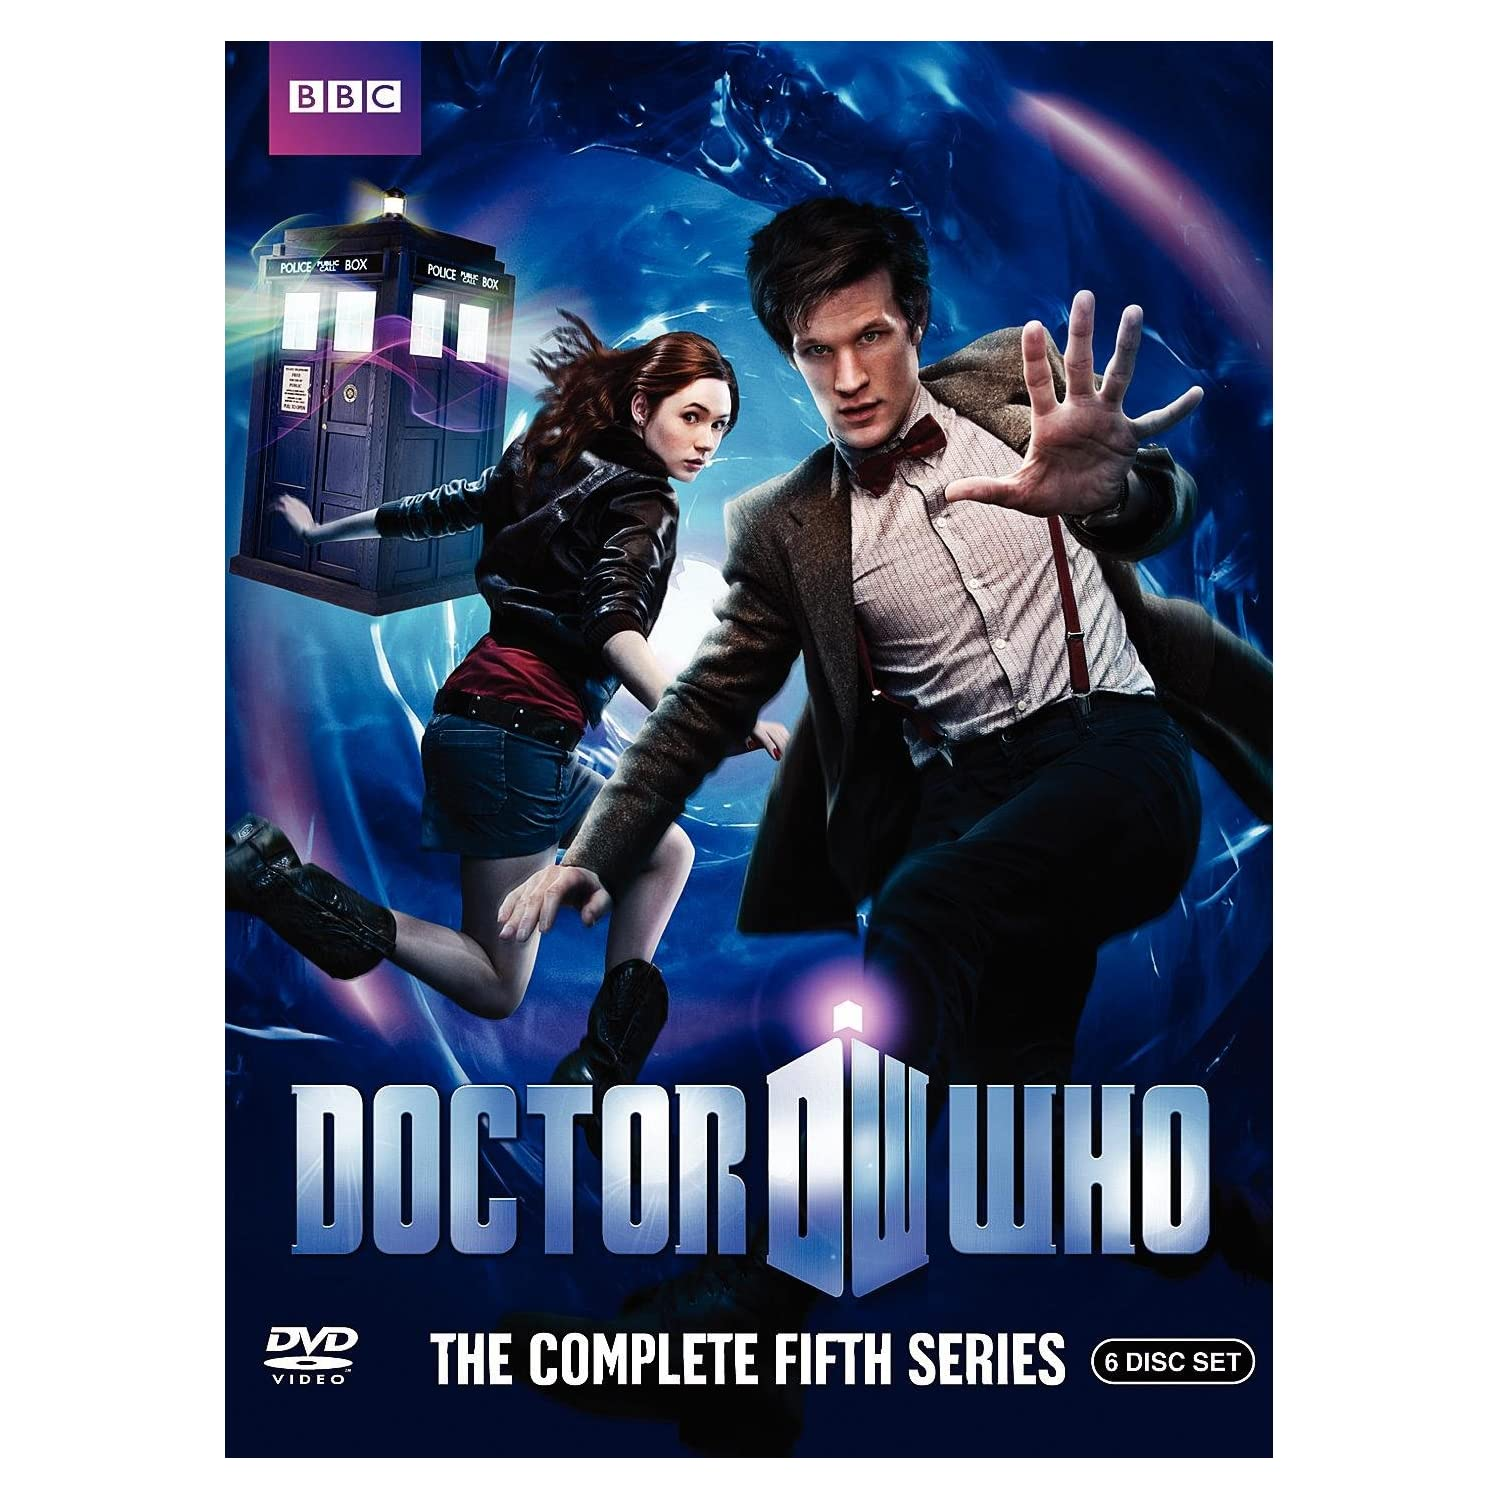 Doctor Who: The Complete Fifth Series (2010)